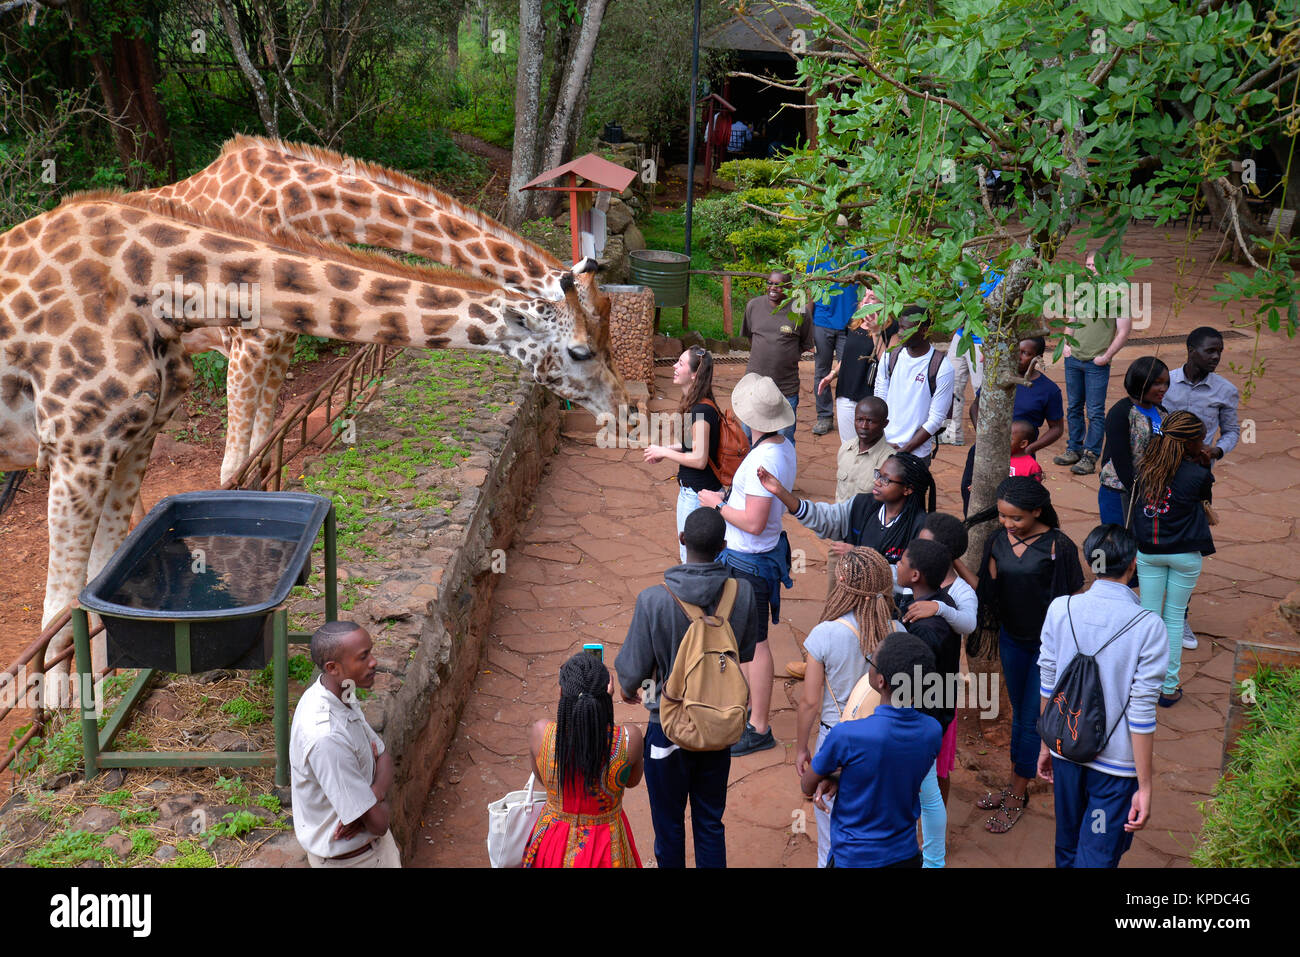 Kenya is a prime tourist destination in East Africa. Famous for wildlife and natural beauty. Giraffe Manor, Nairobi, - Stock Image